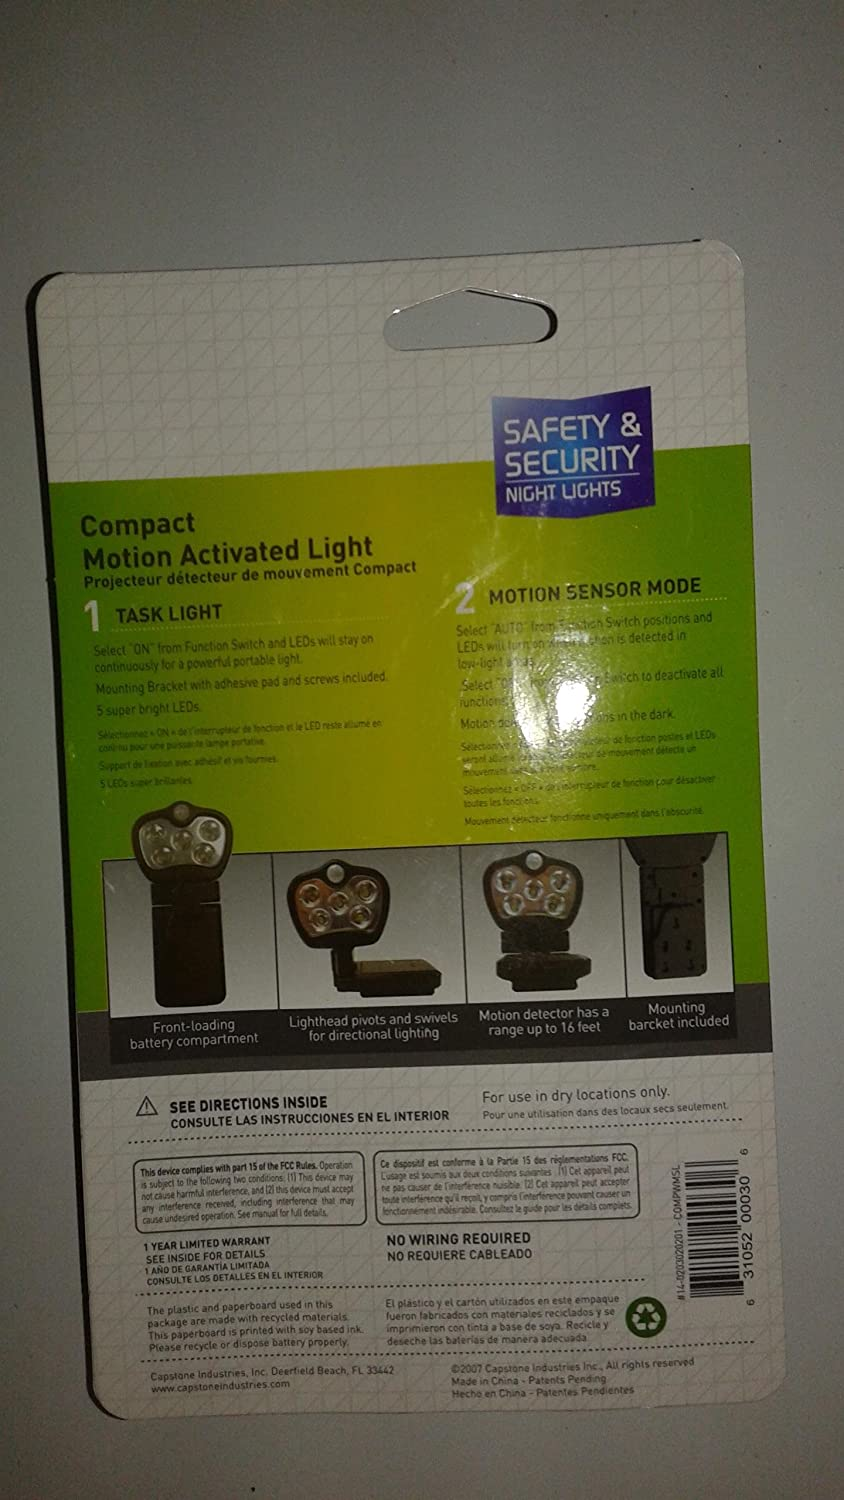 Amazon.com : 5 Light Compact Motion Activated Light (Black) Batteries Not Included : Camera & Photo